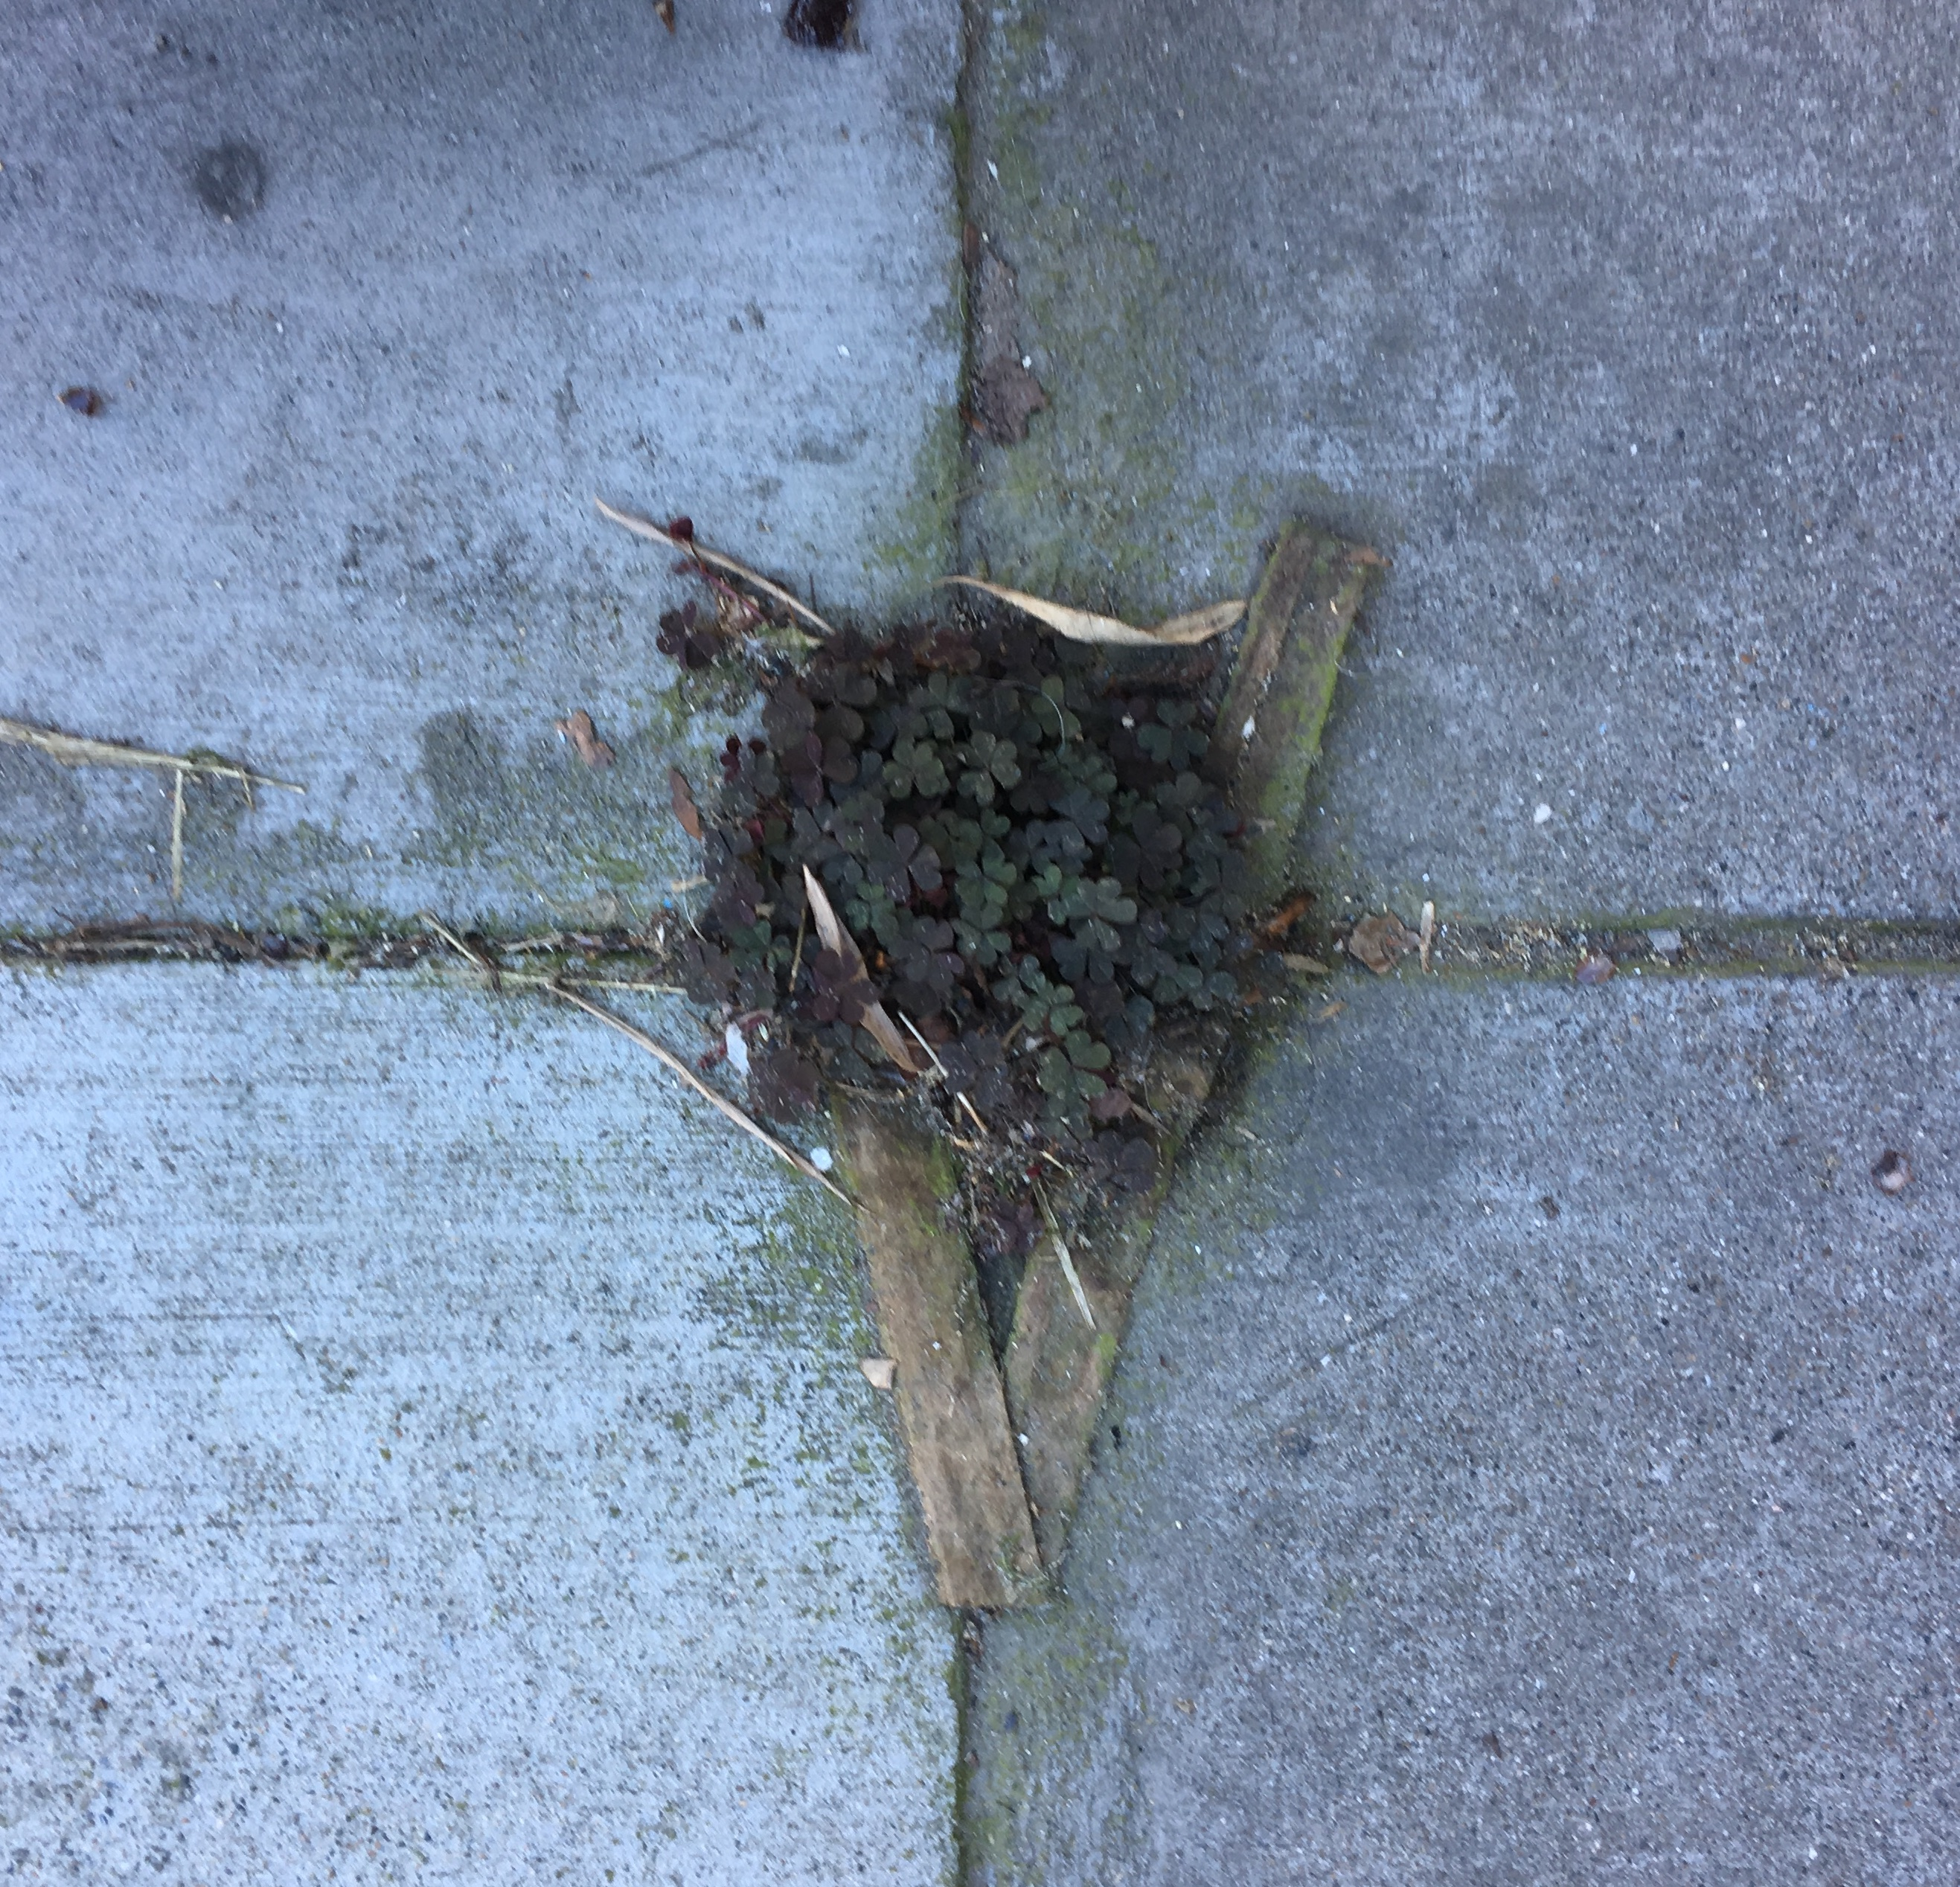 Patch Of Clover Growing From Cracks In The Sidewalk